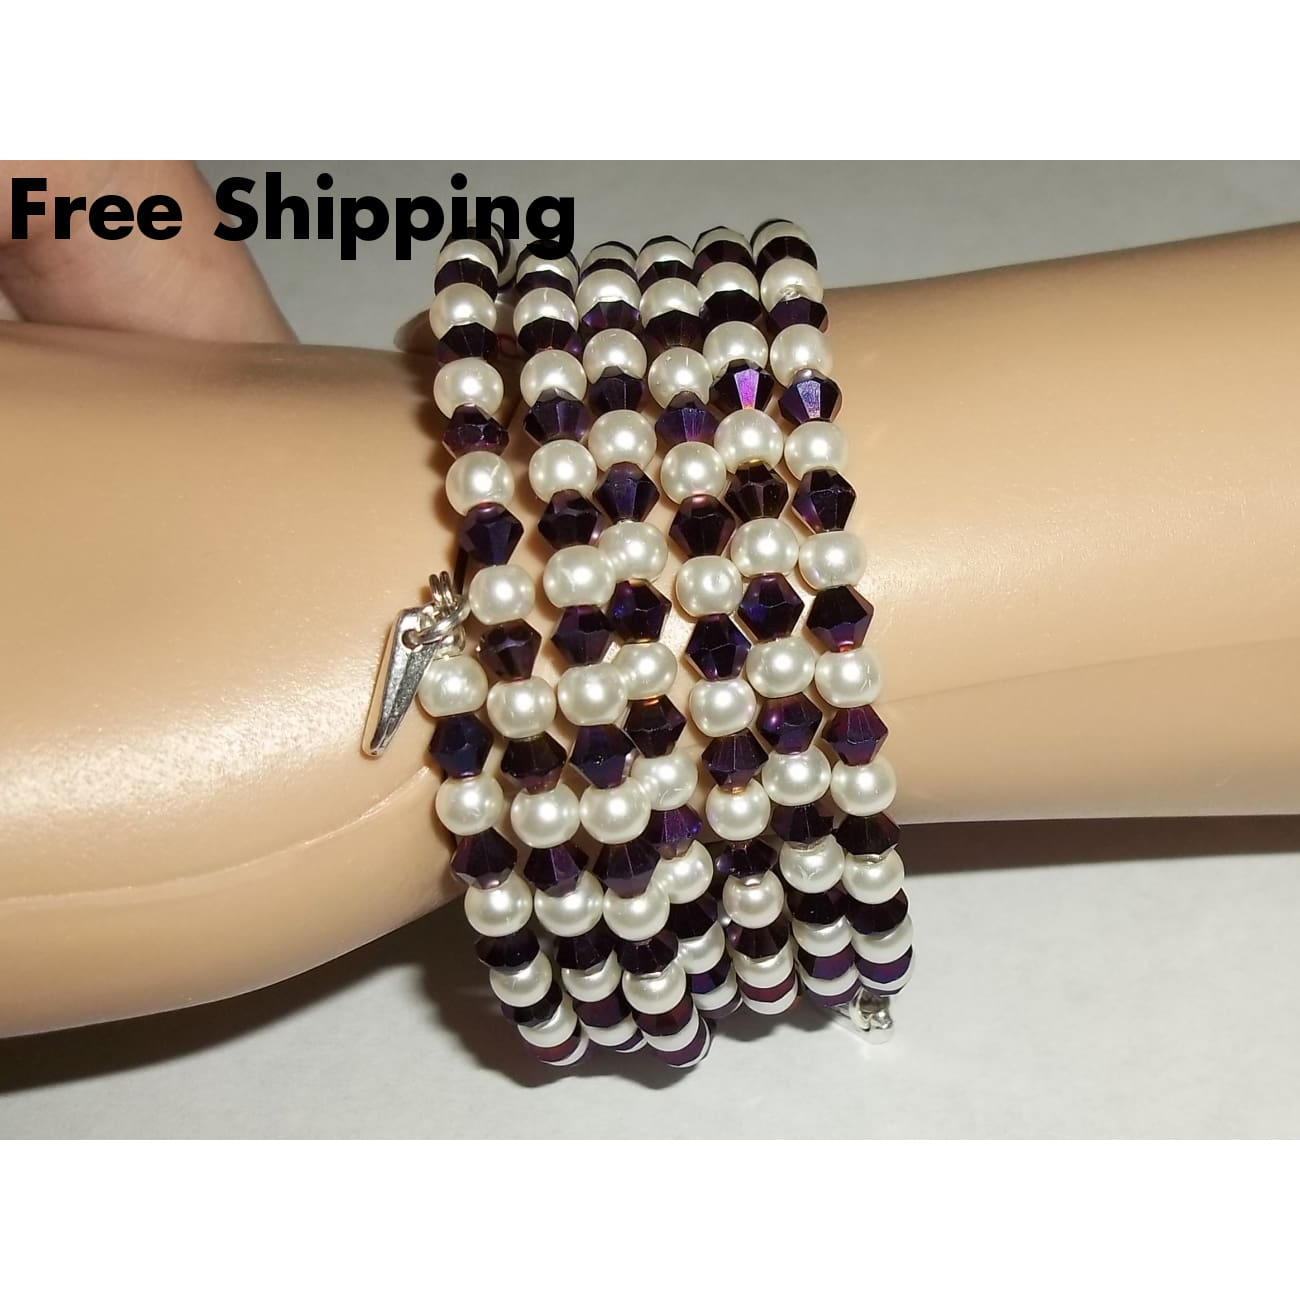 Statement Glass Pearl Bead And Metallic Dark Purple Beaded Artisan Crafted Wrap Bracelet - Bracelets